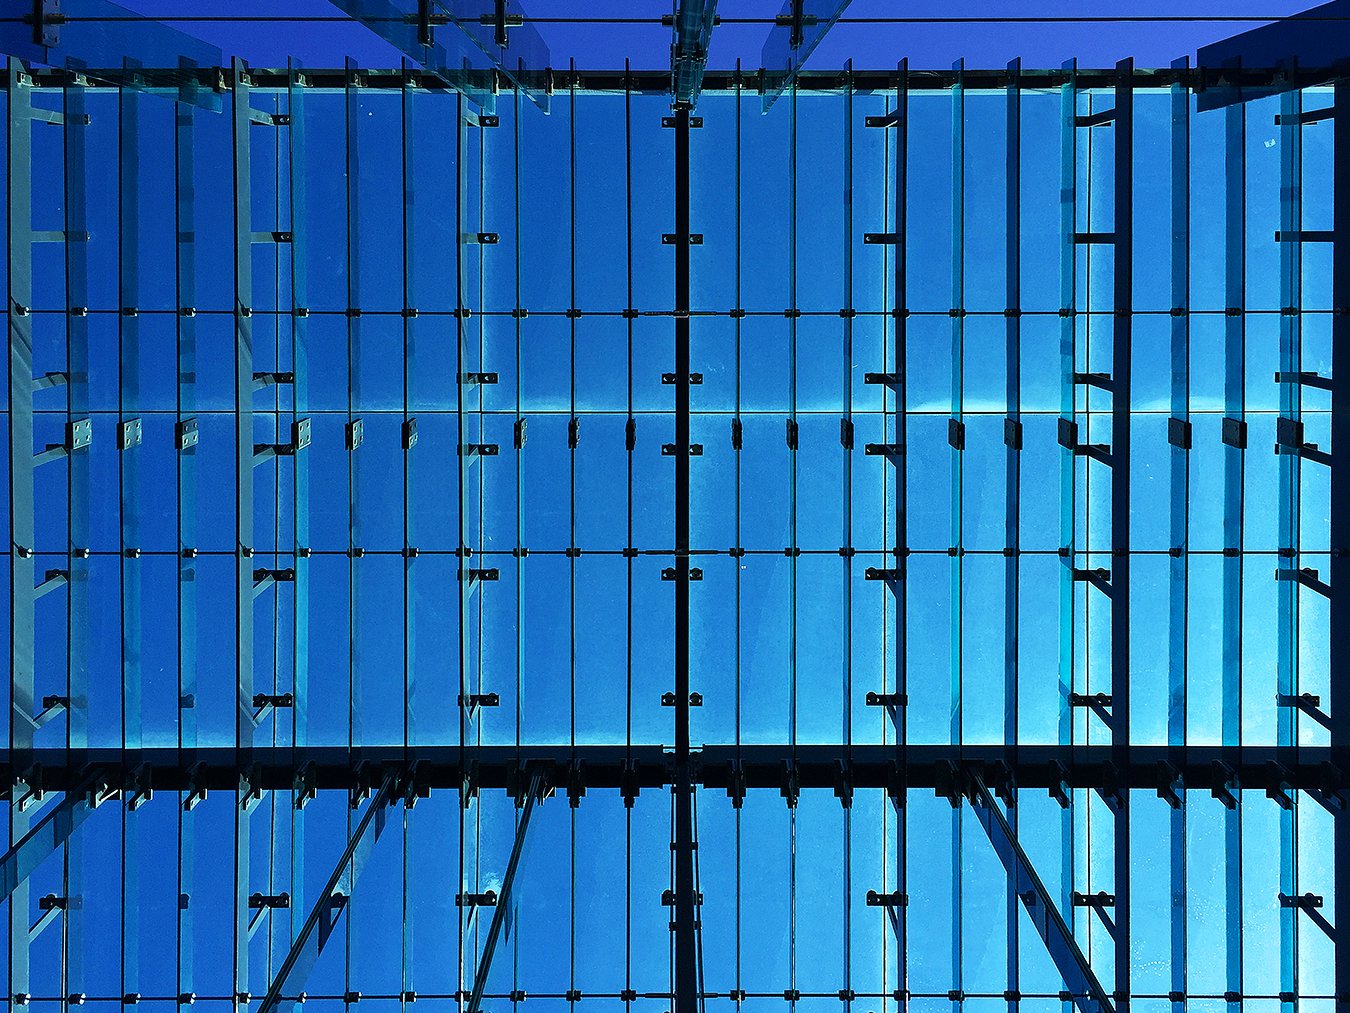 4_Mu_Qiao_travel_Photography_Miami_Key_West_Florida_modern_skylight